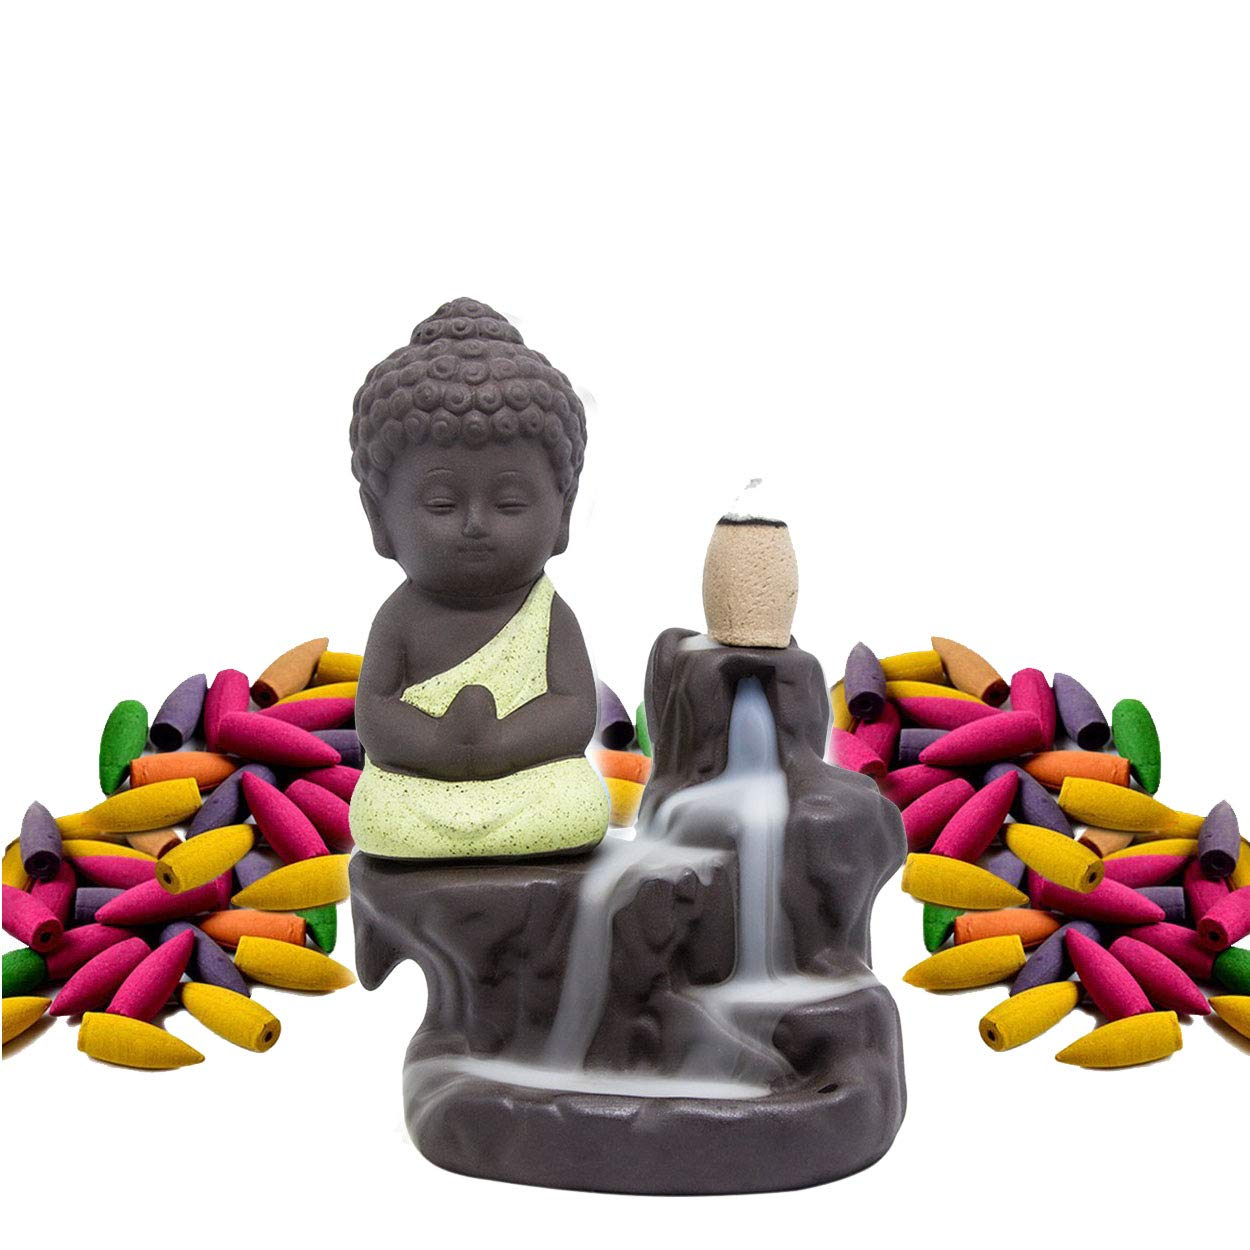 Incense Burner Backflow Set Mixed Aromatherapy Tower Cones Sticks Holder Ceramic Waterfall Buddha Monk Ash Catcher -IN007 Yellow (70 Variety Cones& Holder)